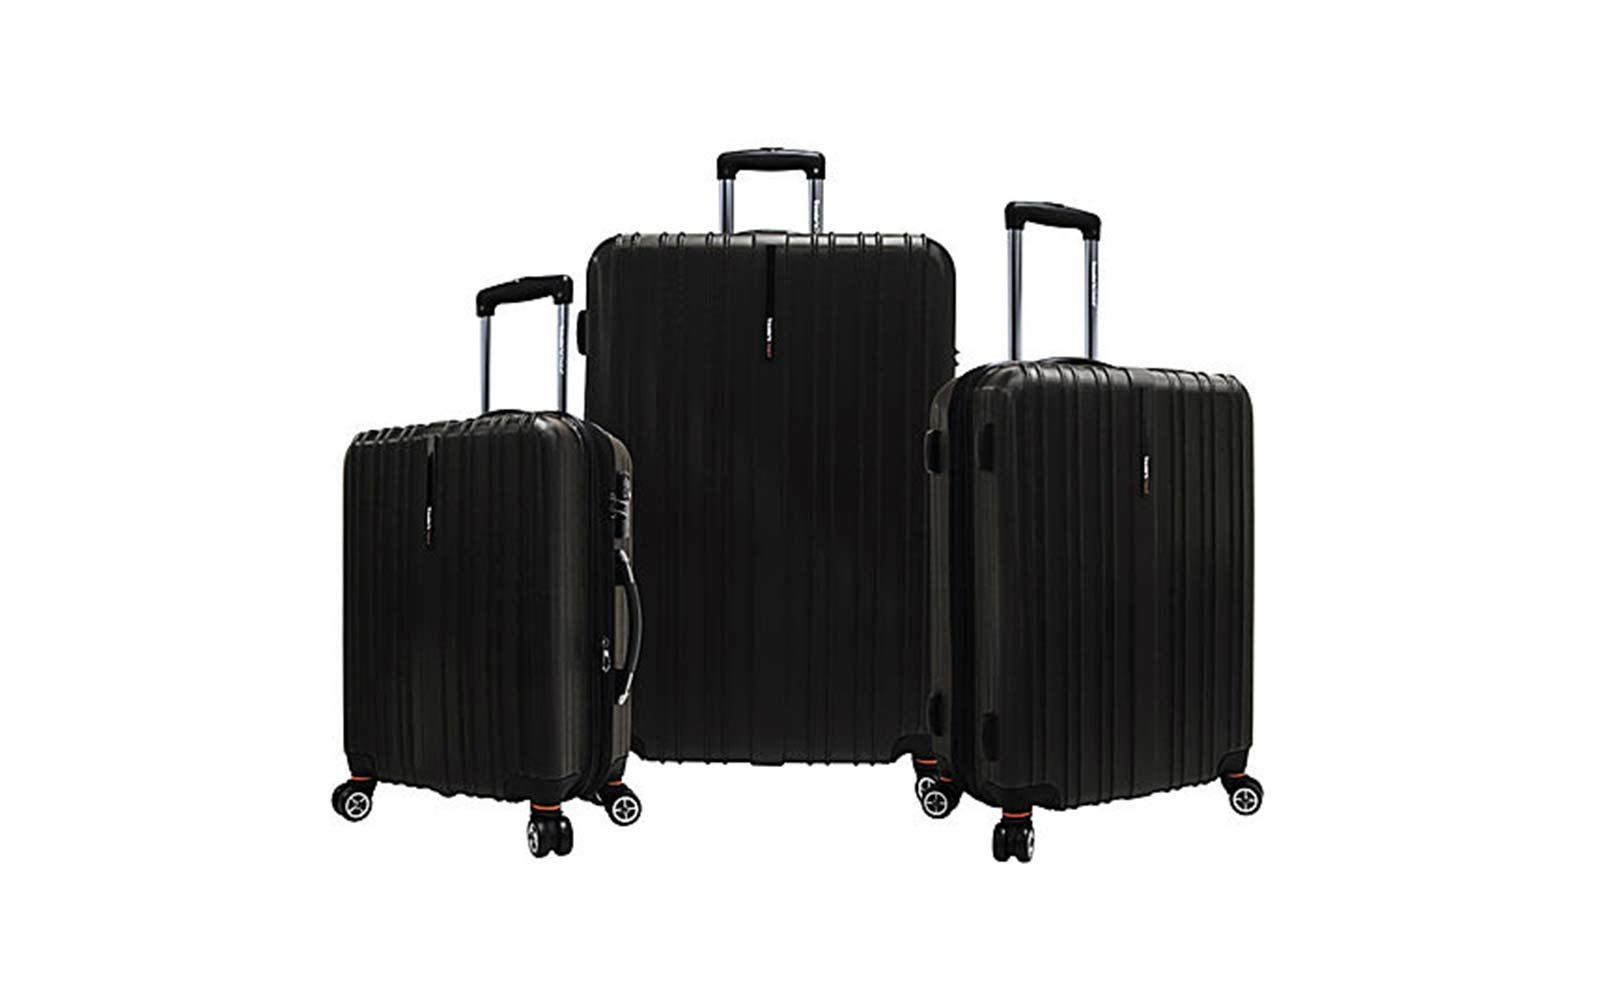 8b057789d Traveler's Choice Tasmania 3-piece Expandable Hardside Spinner Luggage Set